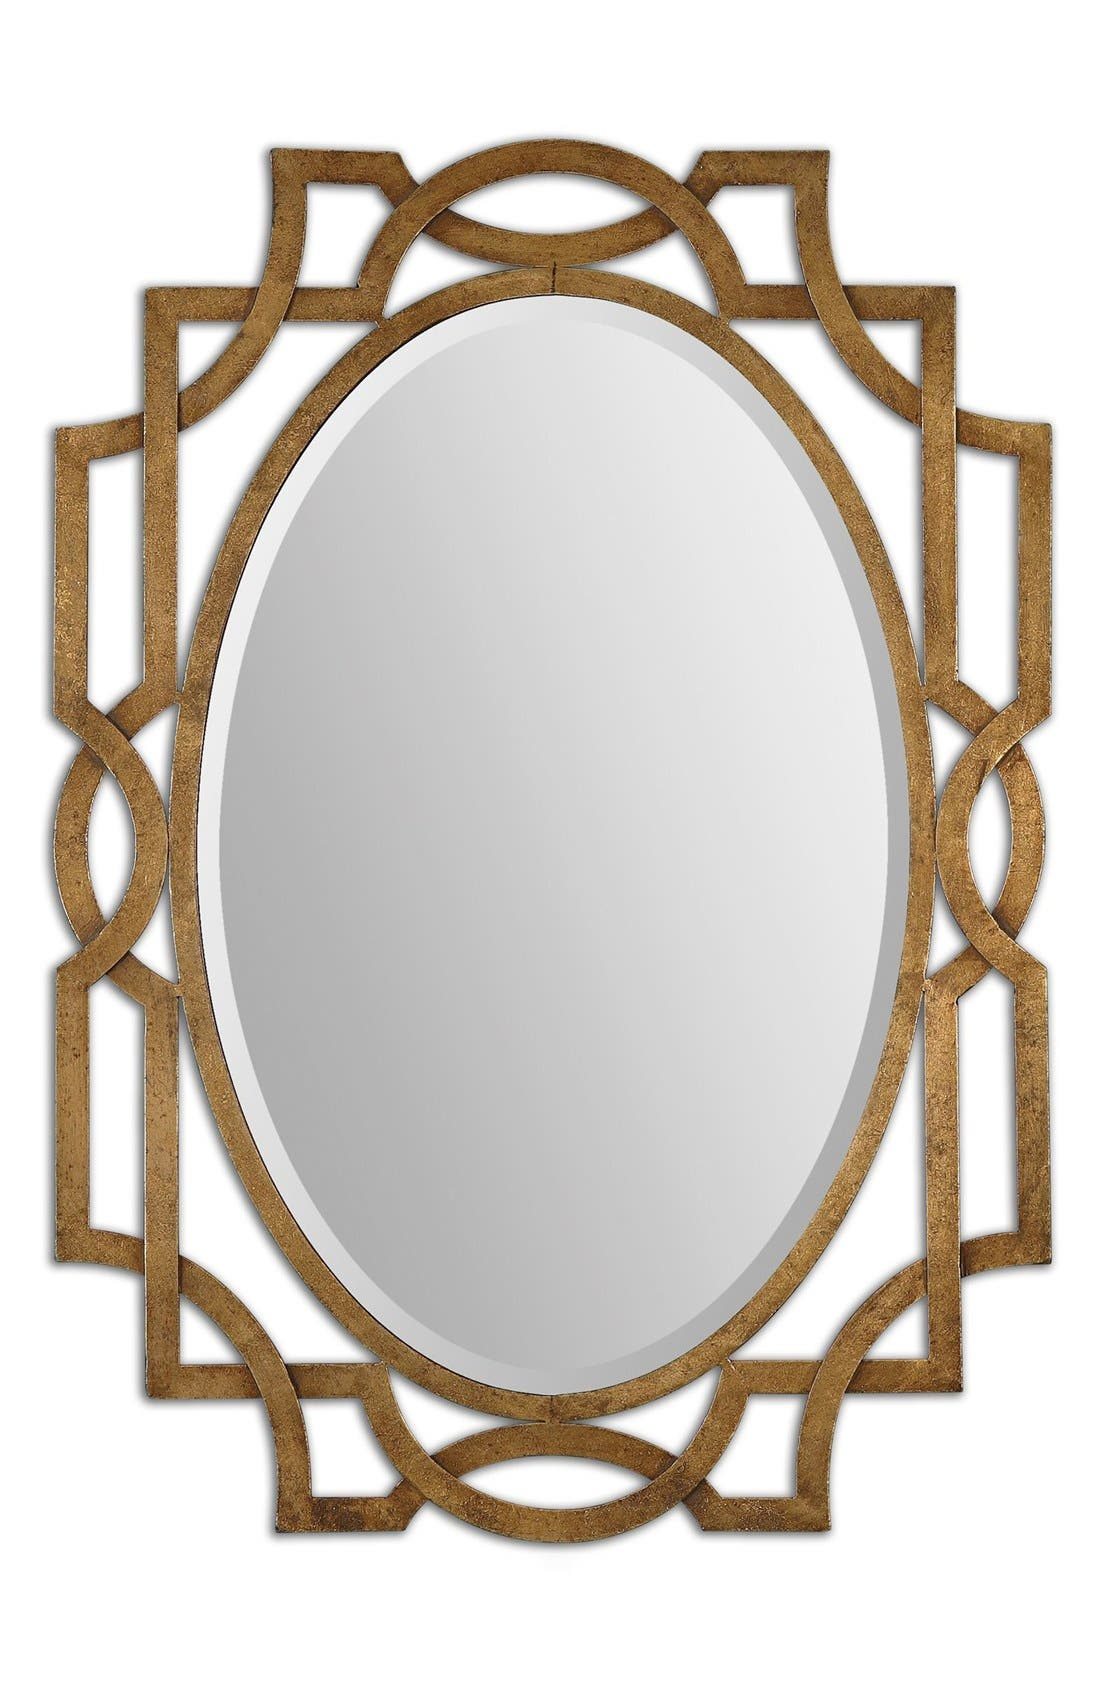 Main Image - Uttermost 'Margutta' Antiqued Goldtone Oval Mirror